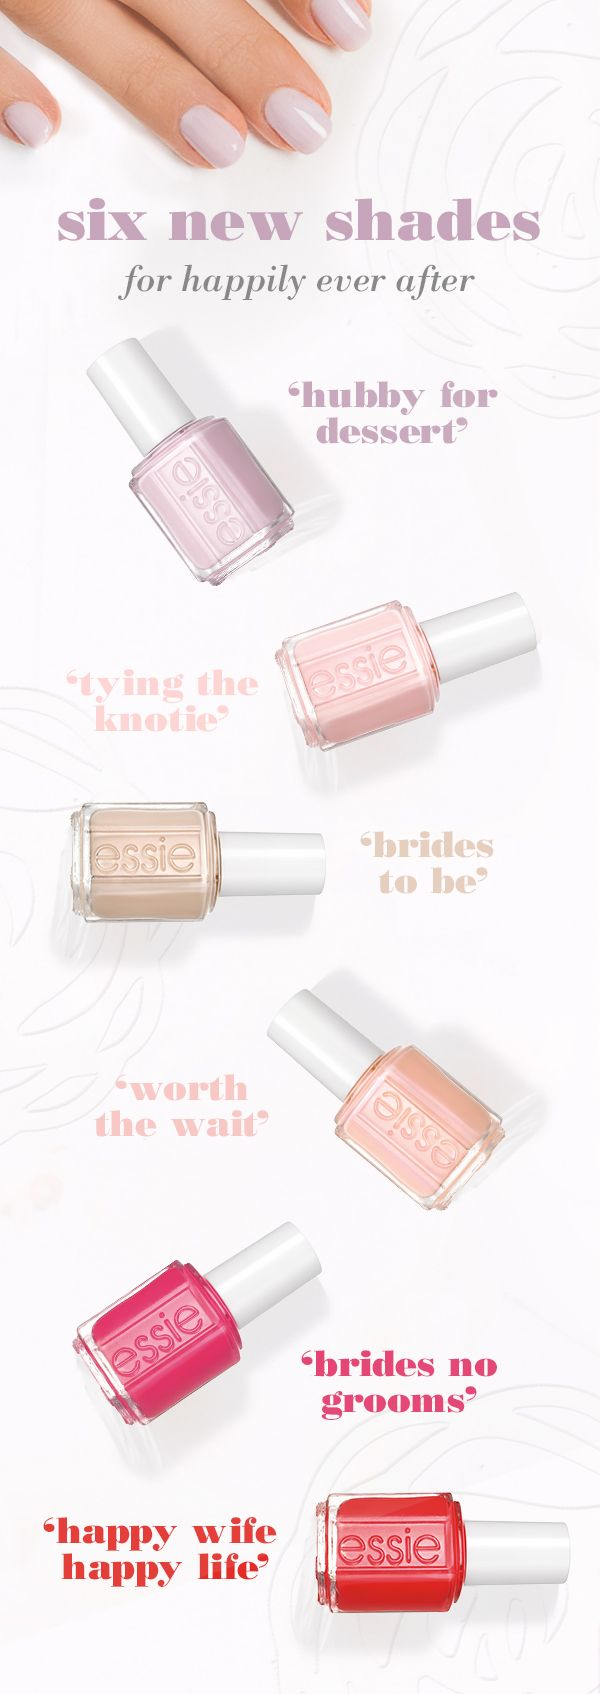 from collection  Be      for bridal a these shades bride bridesmaid essie with whether fabulous ready season in   online pakistan you   re a shops From Pinteres    the tradition    wedding or